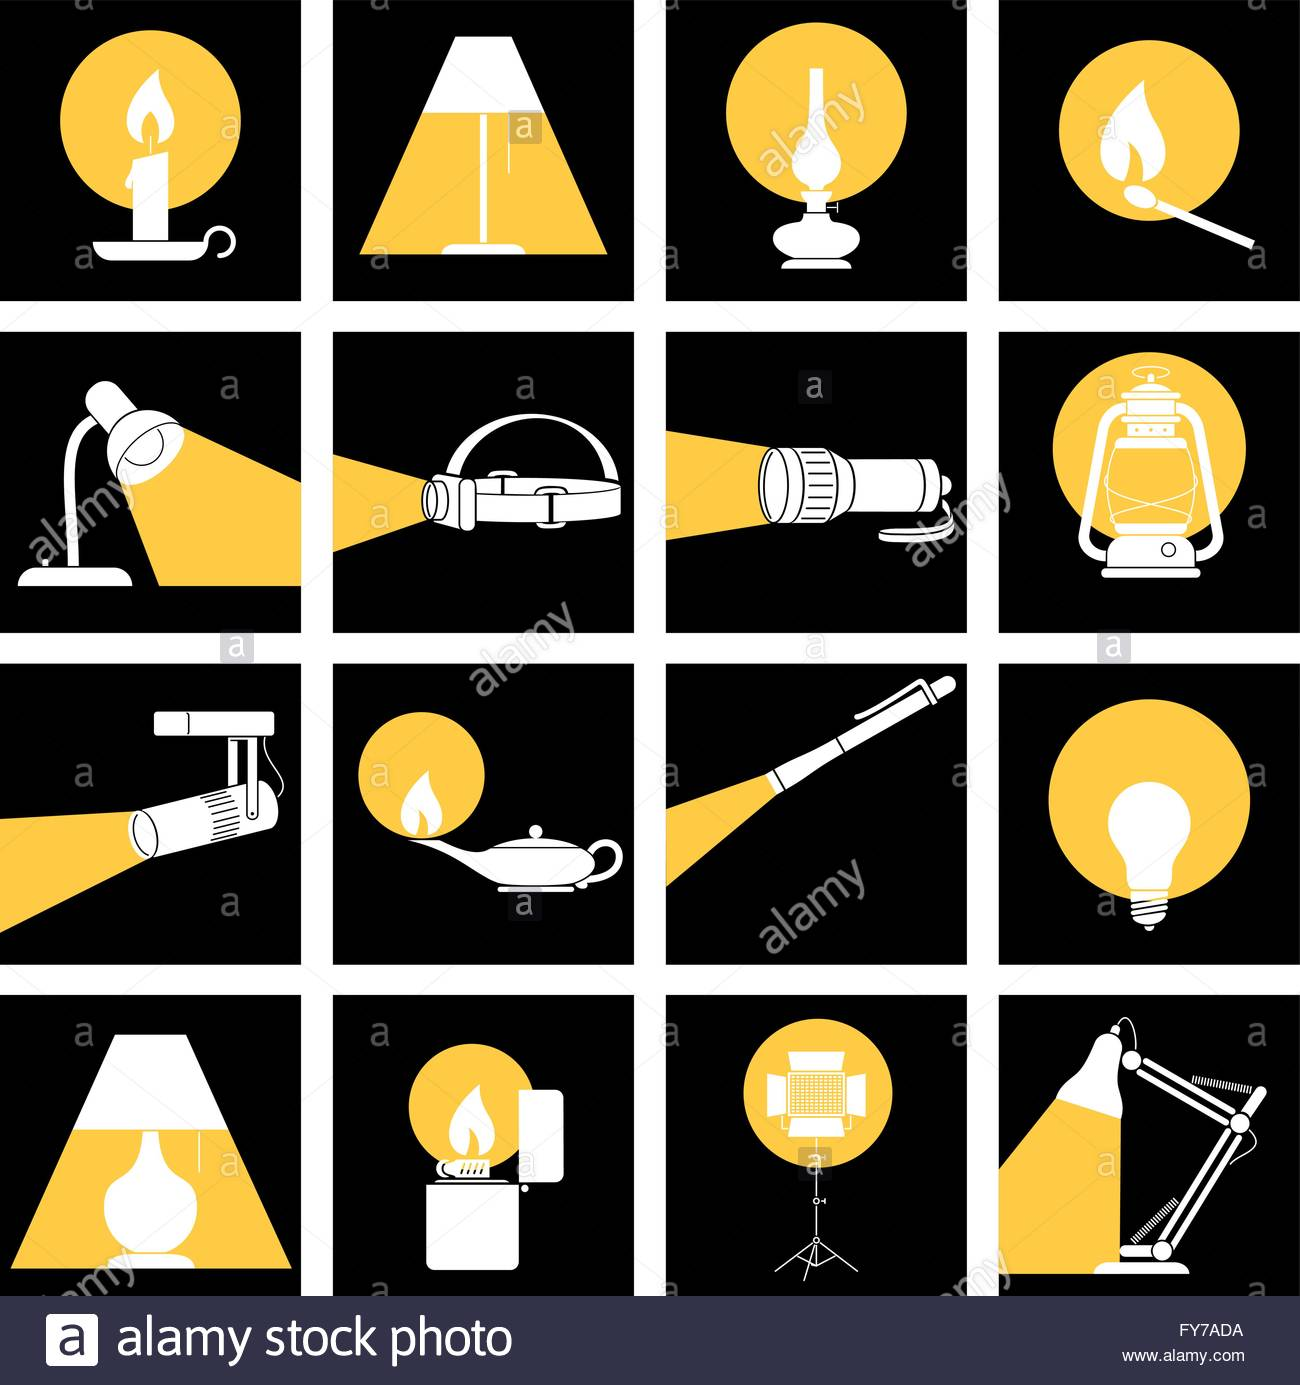 Lamp Lights In The Dark. Set of Lamps with their Lights - Stock Vector